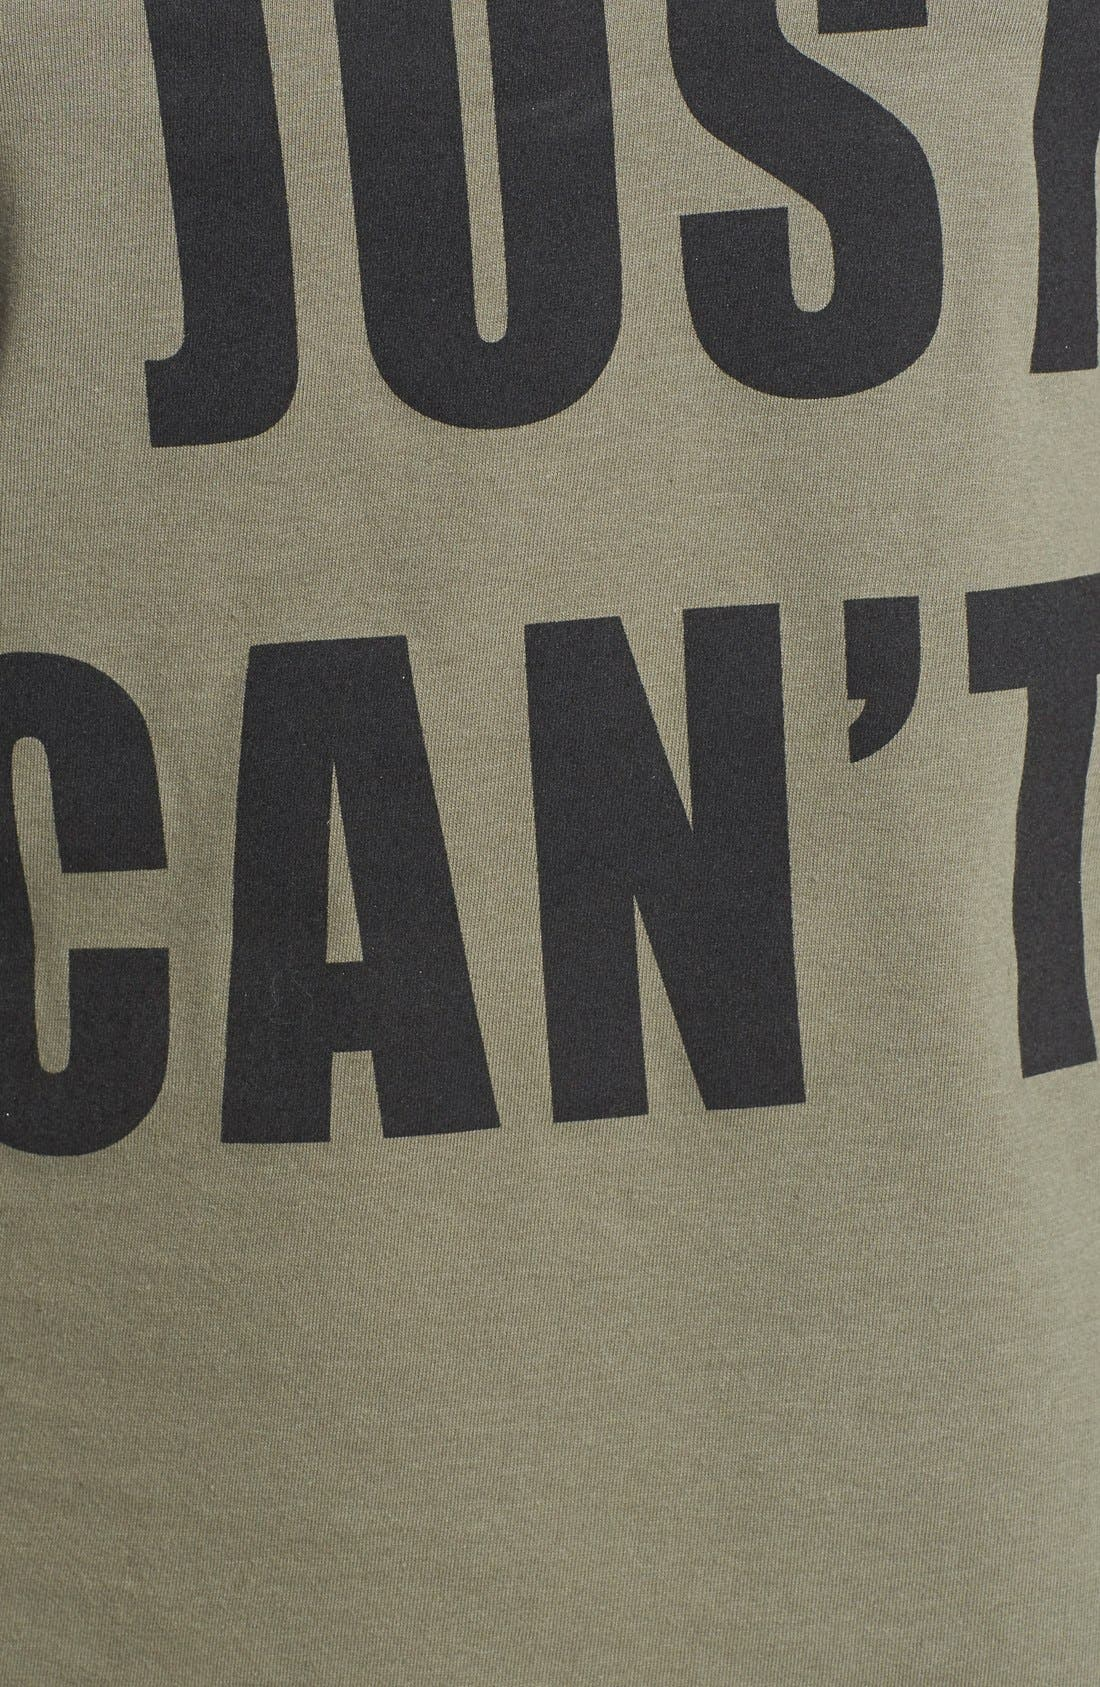 'I Just Can't' Tee,                             Alternate thumbnail 2, color,                             300